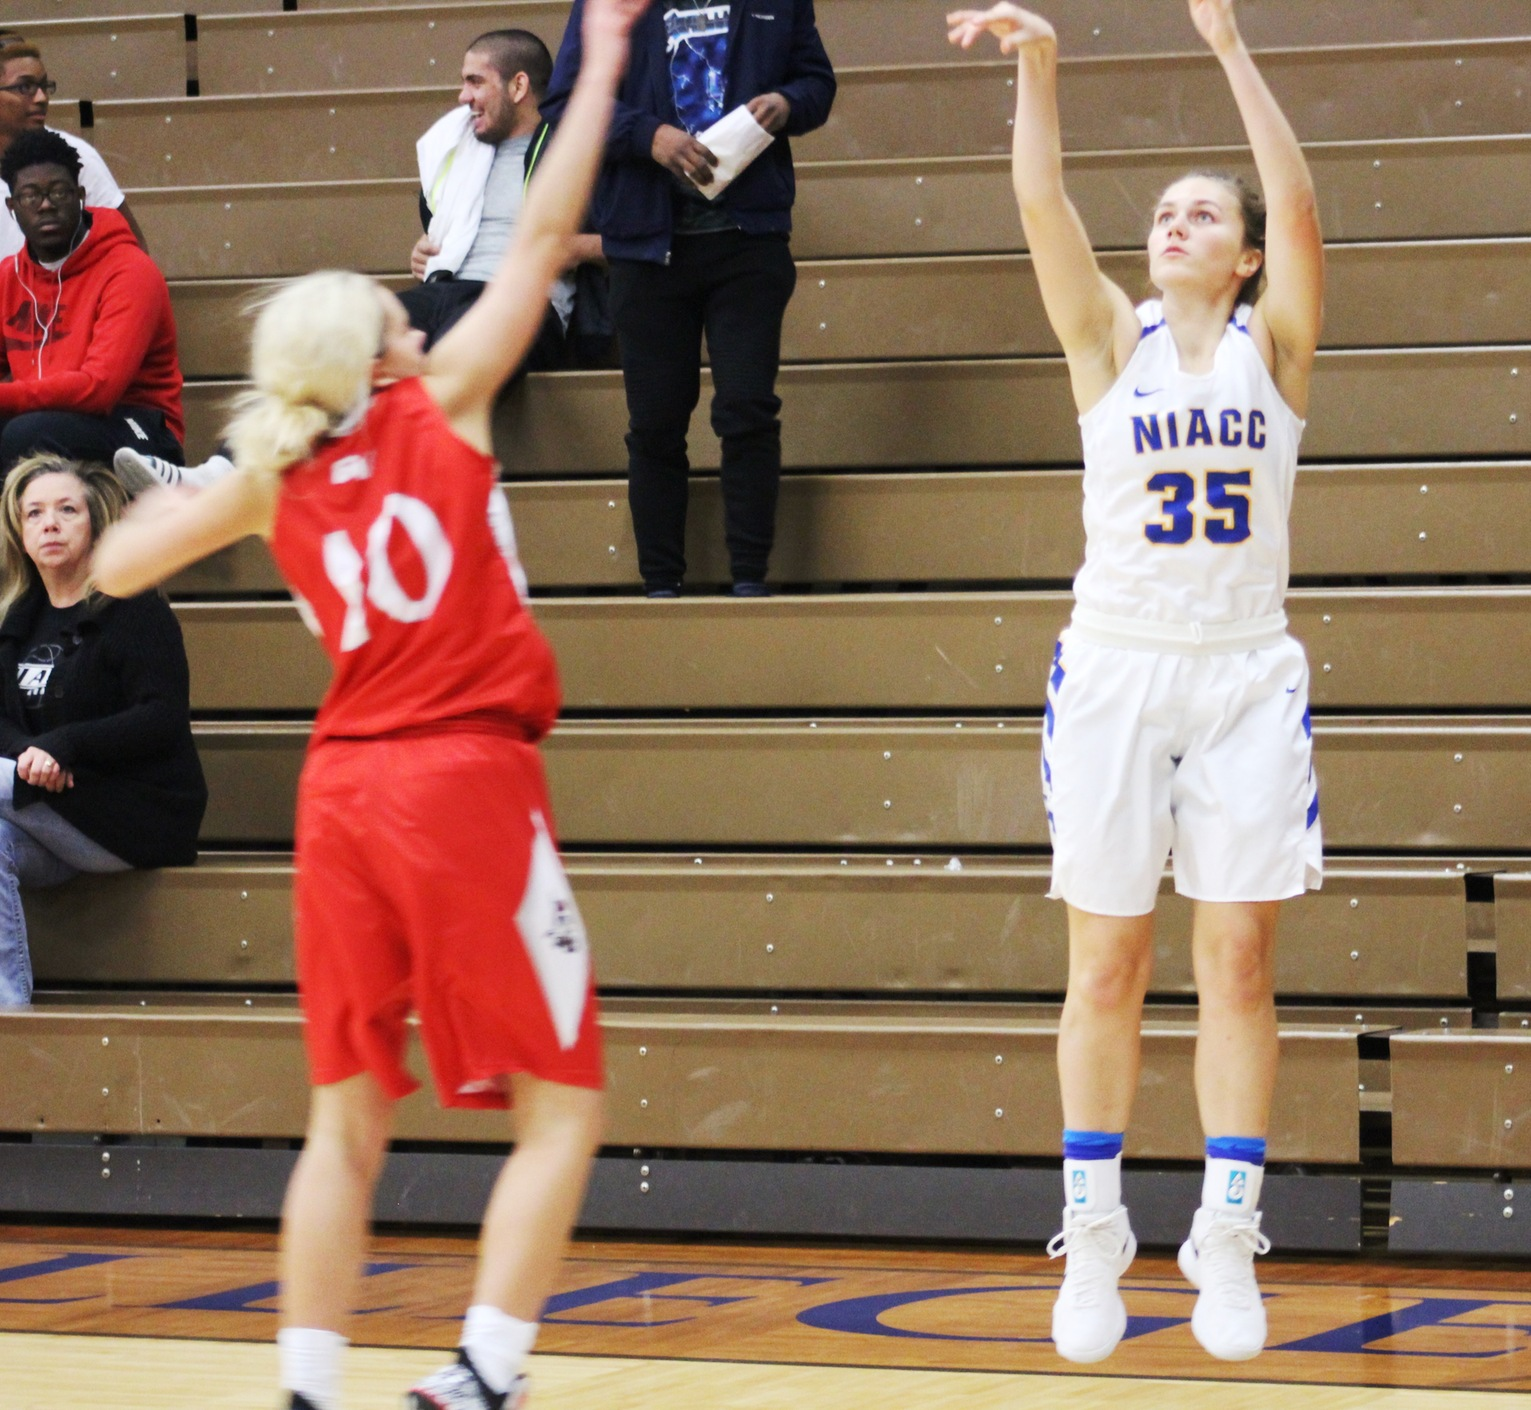 Kelsie Willert connects on a 3-point goal in the second half of Sunday's game against the Grand View Junior Varsity.